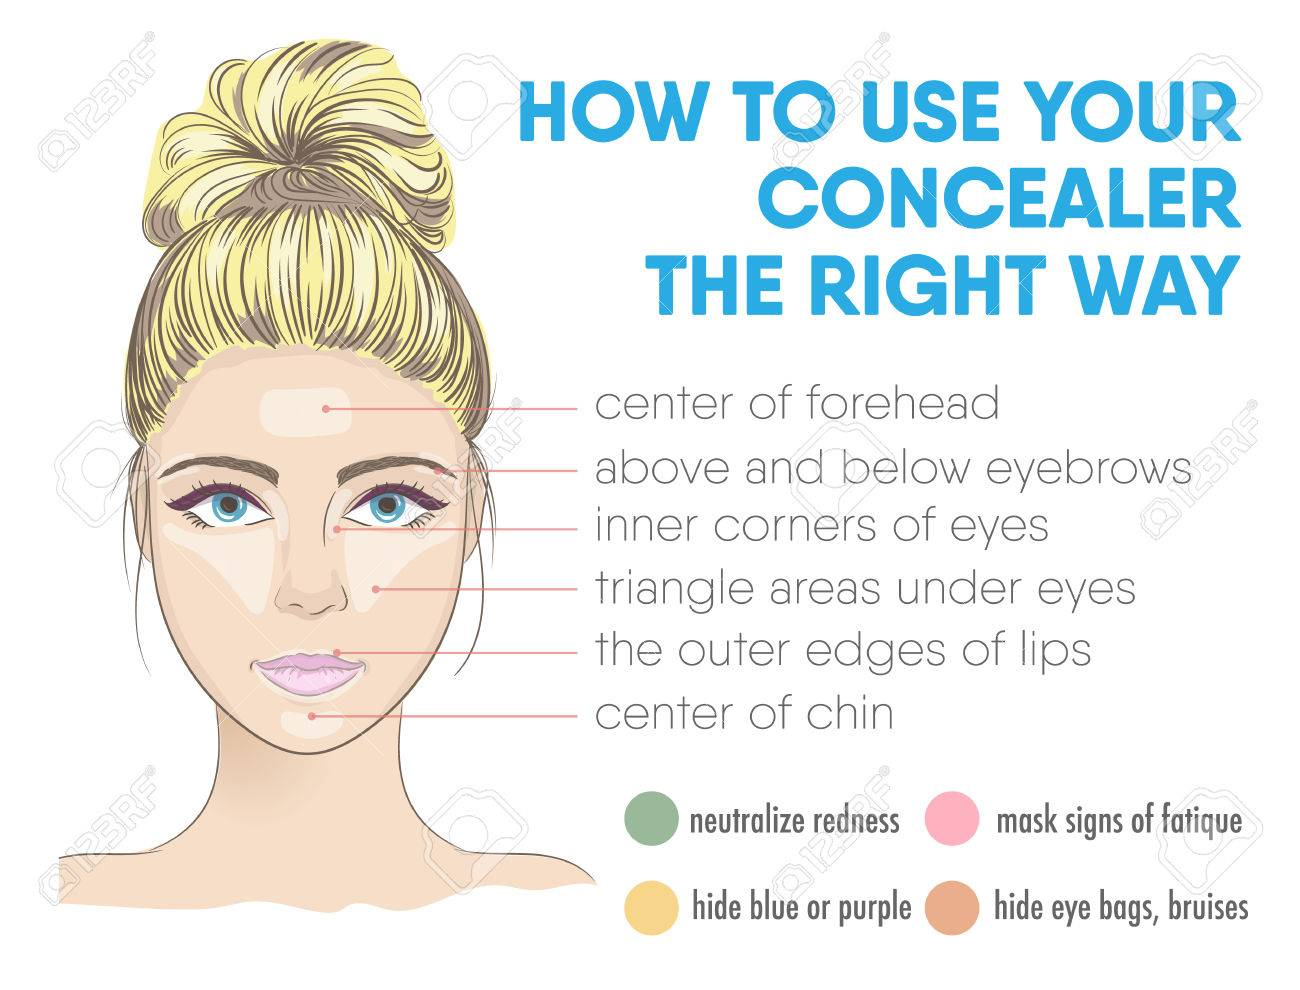 How to use your concealer the right way infographic. Vector illustration with makeup and beauty